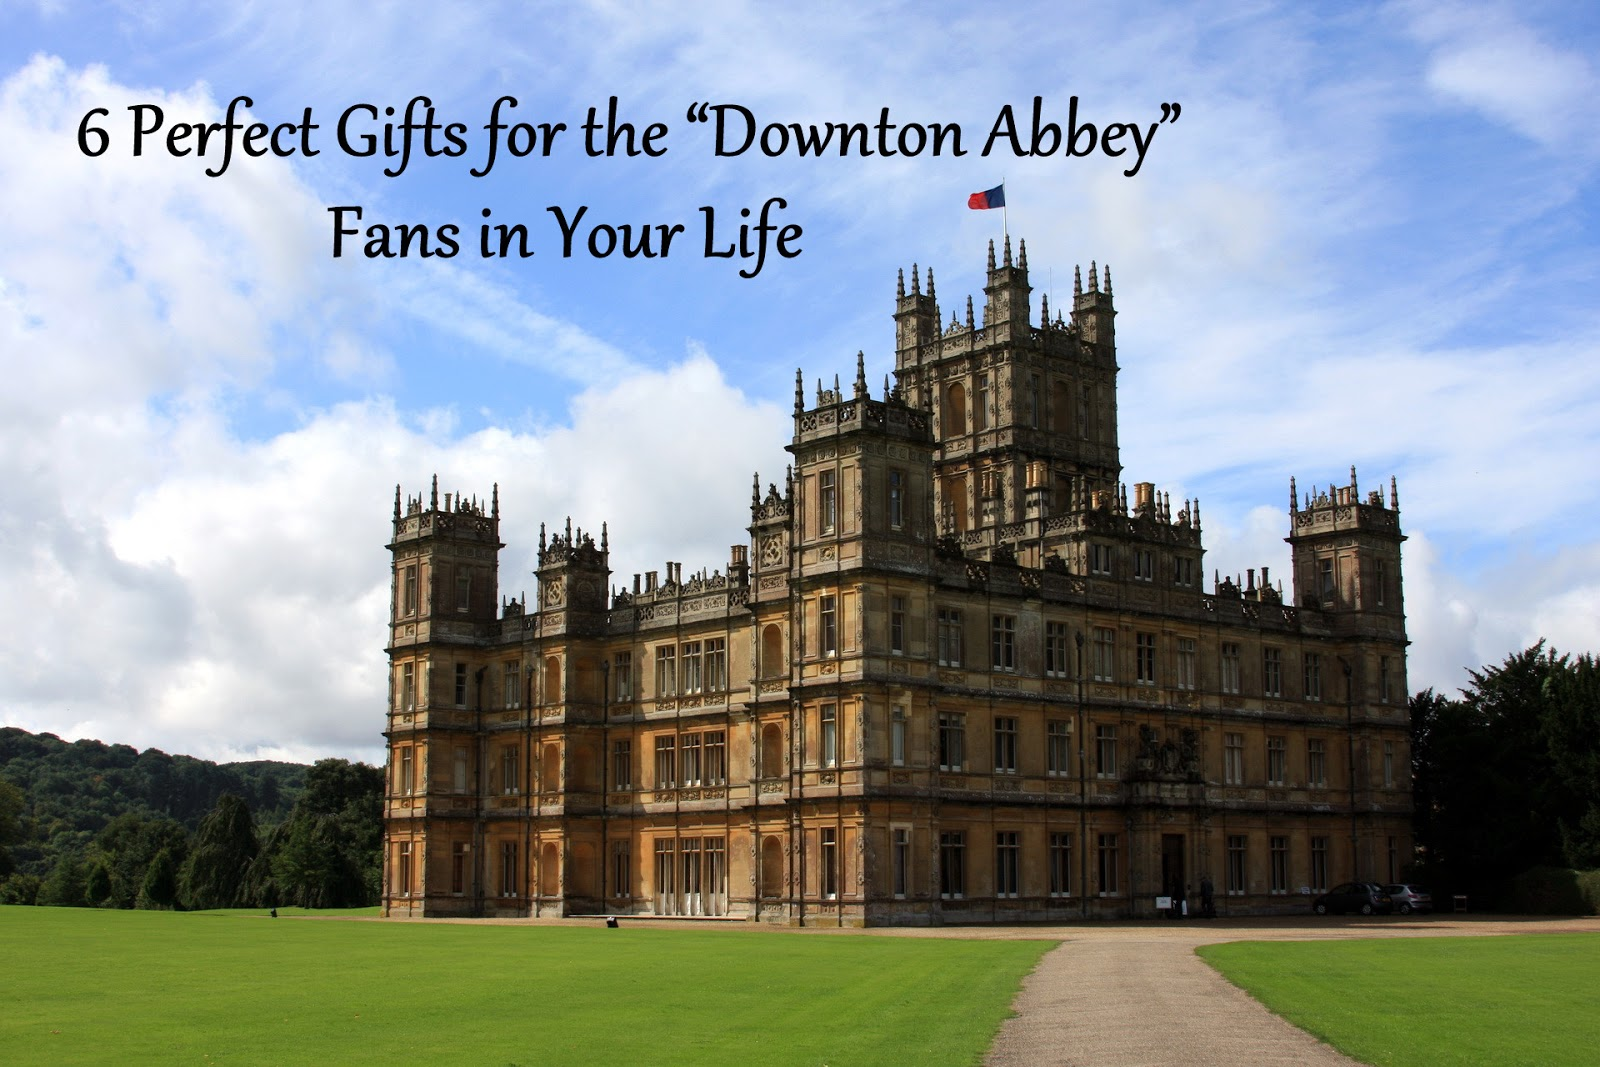 6 Perfect Gifts for the Downton Abbey Fans in Your Life